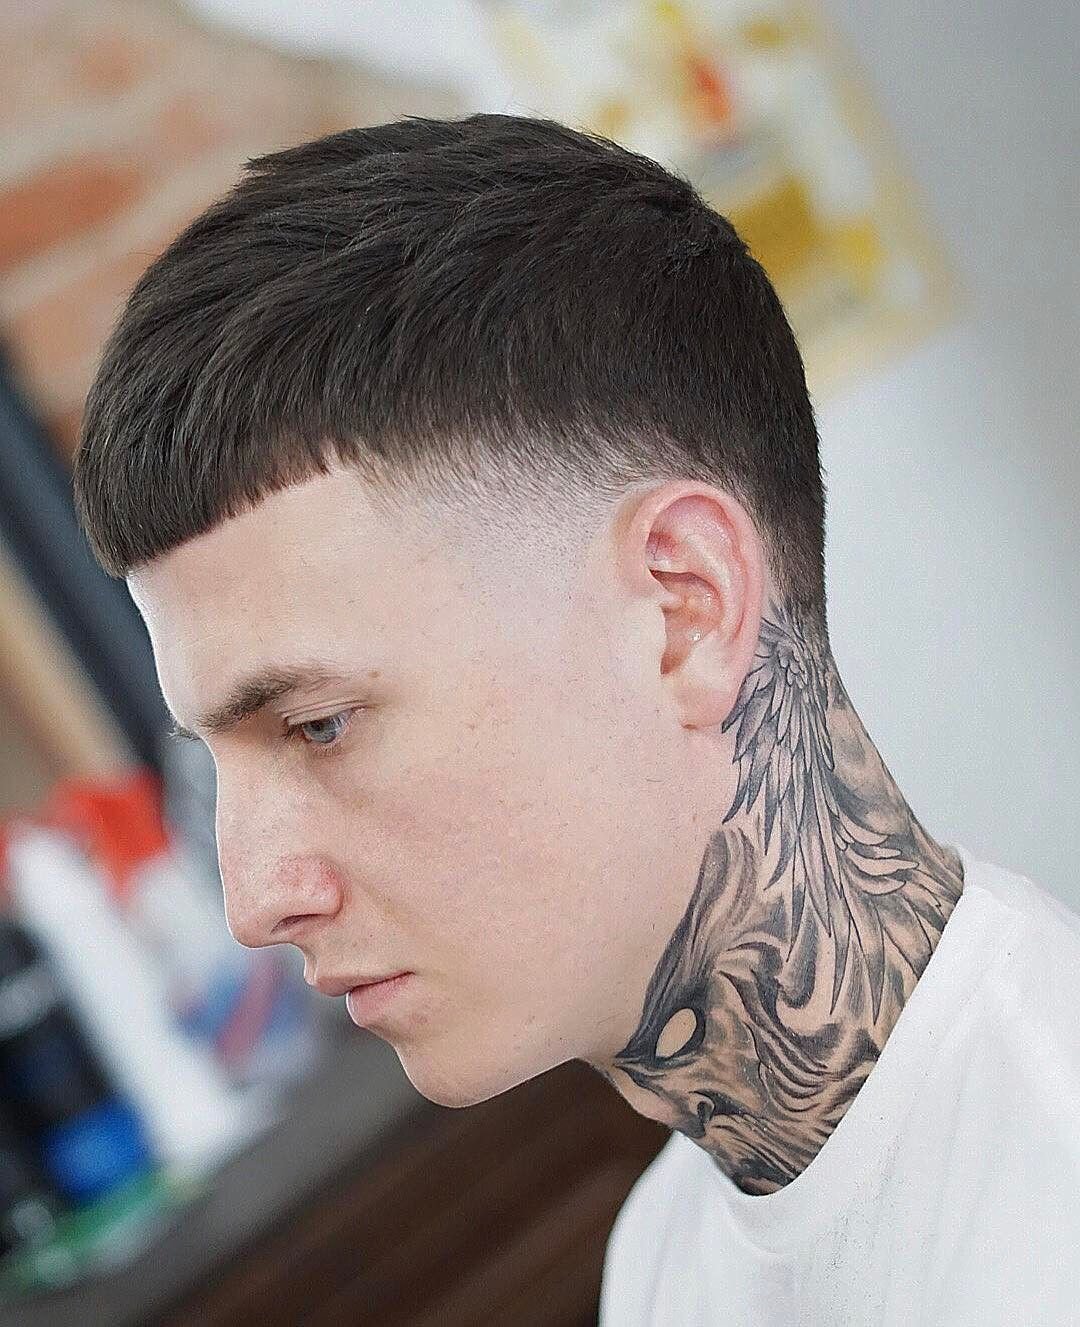 Caesar haircut cut bangs bang hair and haircuts the caesar haircut is one of these classic mens hairstyles that never goes out of style it is characterized by short horizontally straight cut bangs solutioingenieria Choice Image